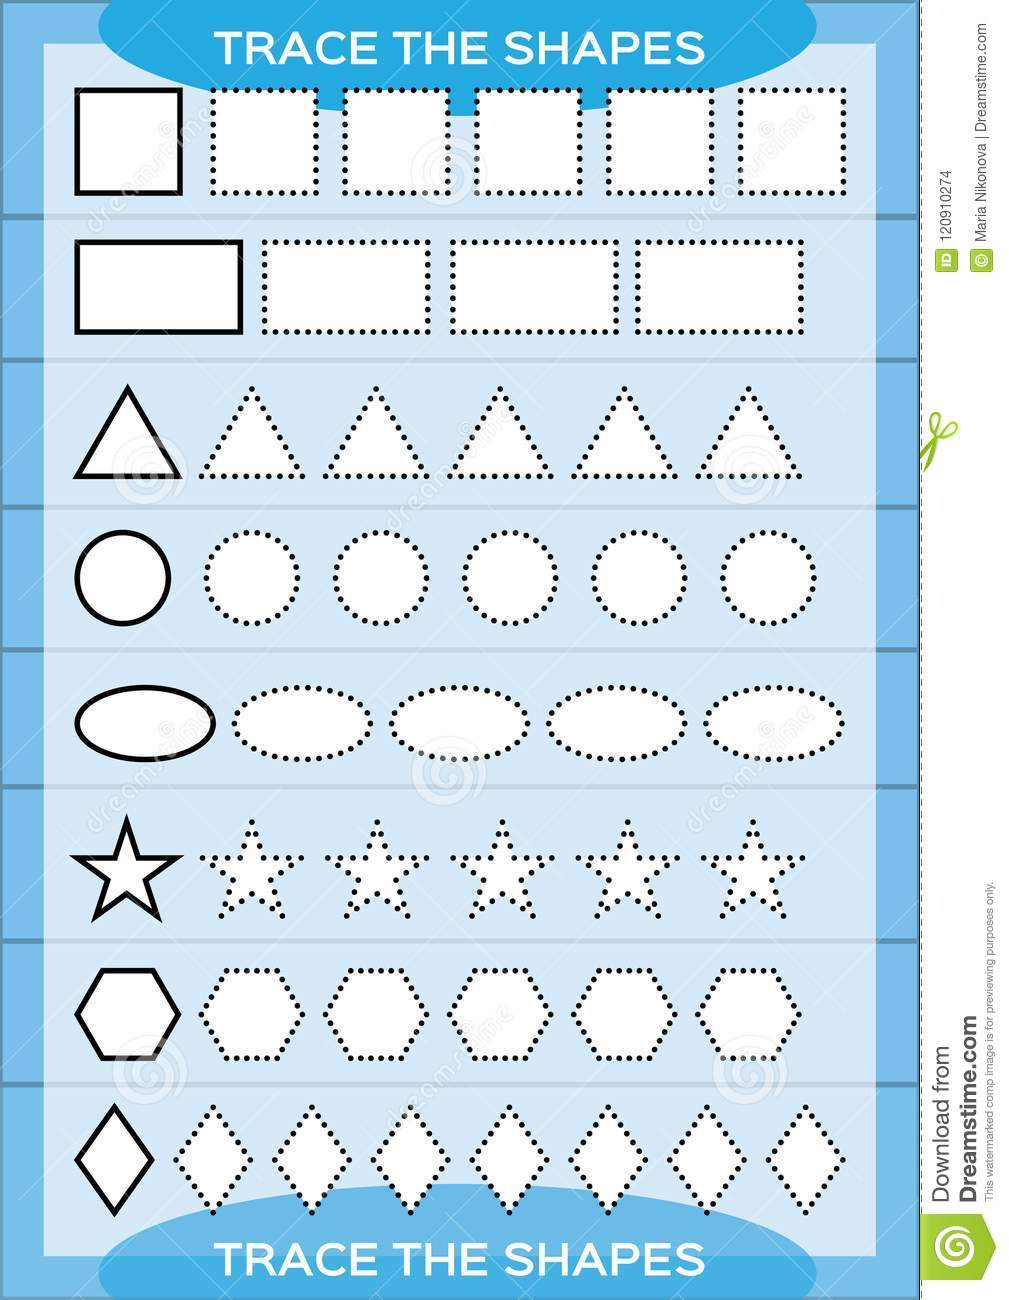 Fine Motor Skills Worksheets Trace the Shapes Kids Education Preschool Worksheet Basic